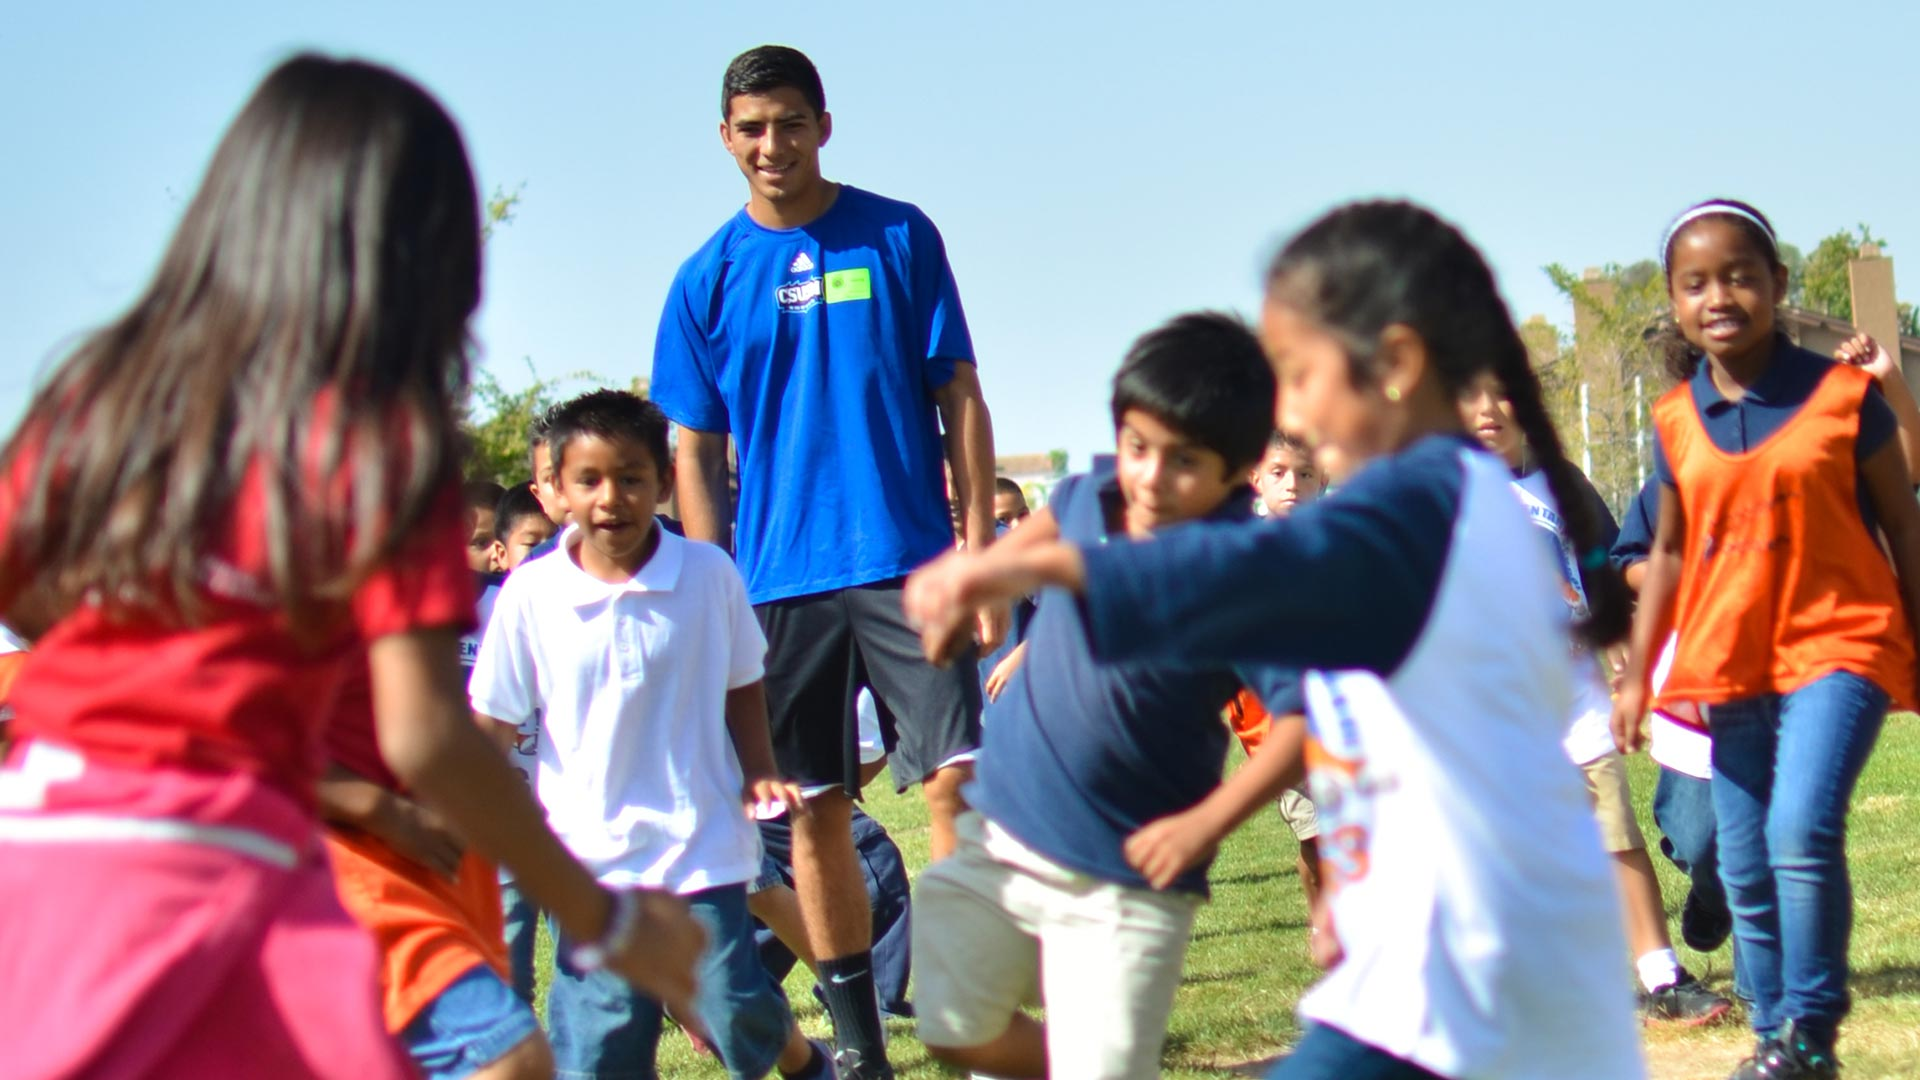 CSUSM student working with kids